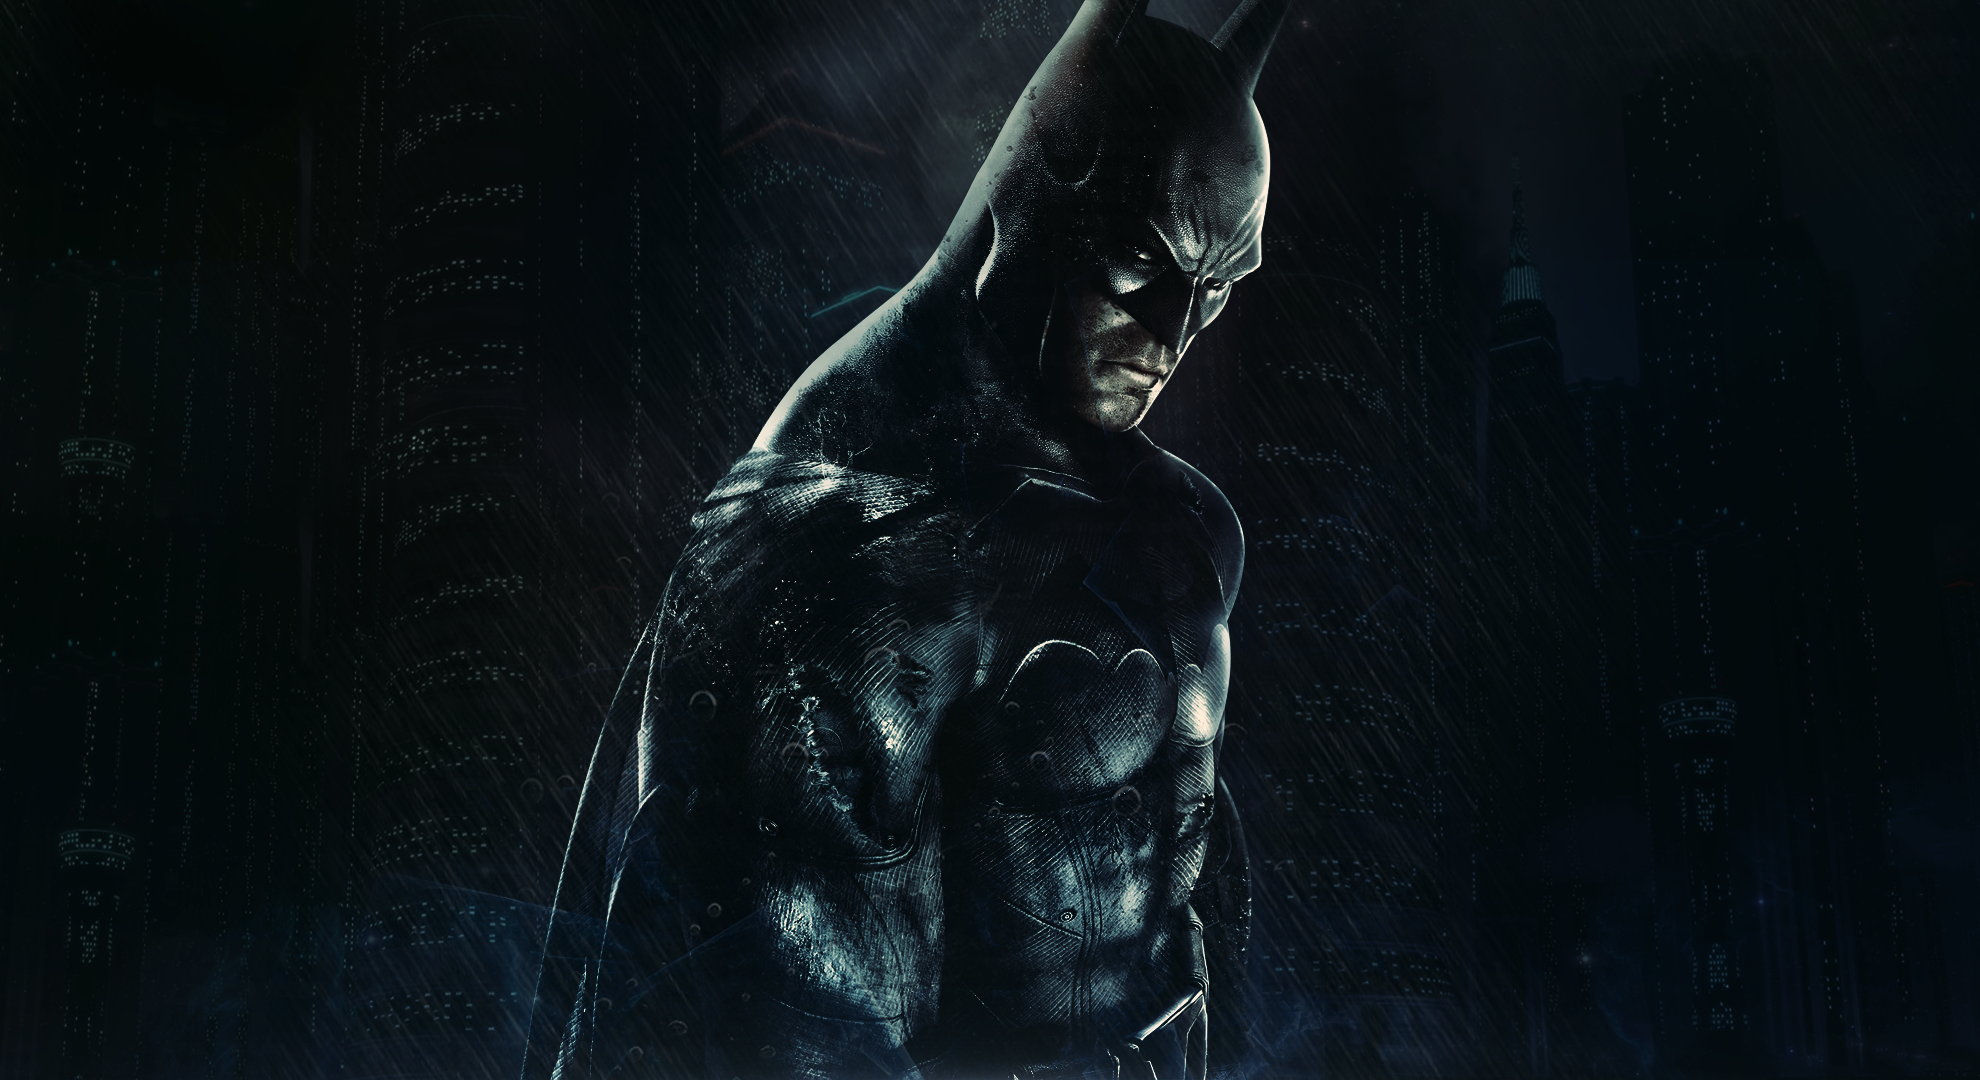 batman reboot hd wallpaper for desktop backgrounds also for other hd devices